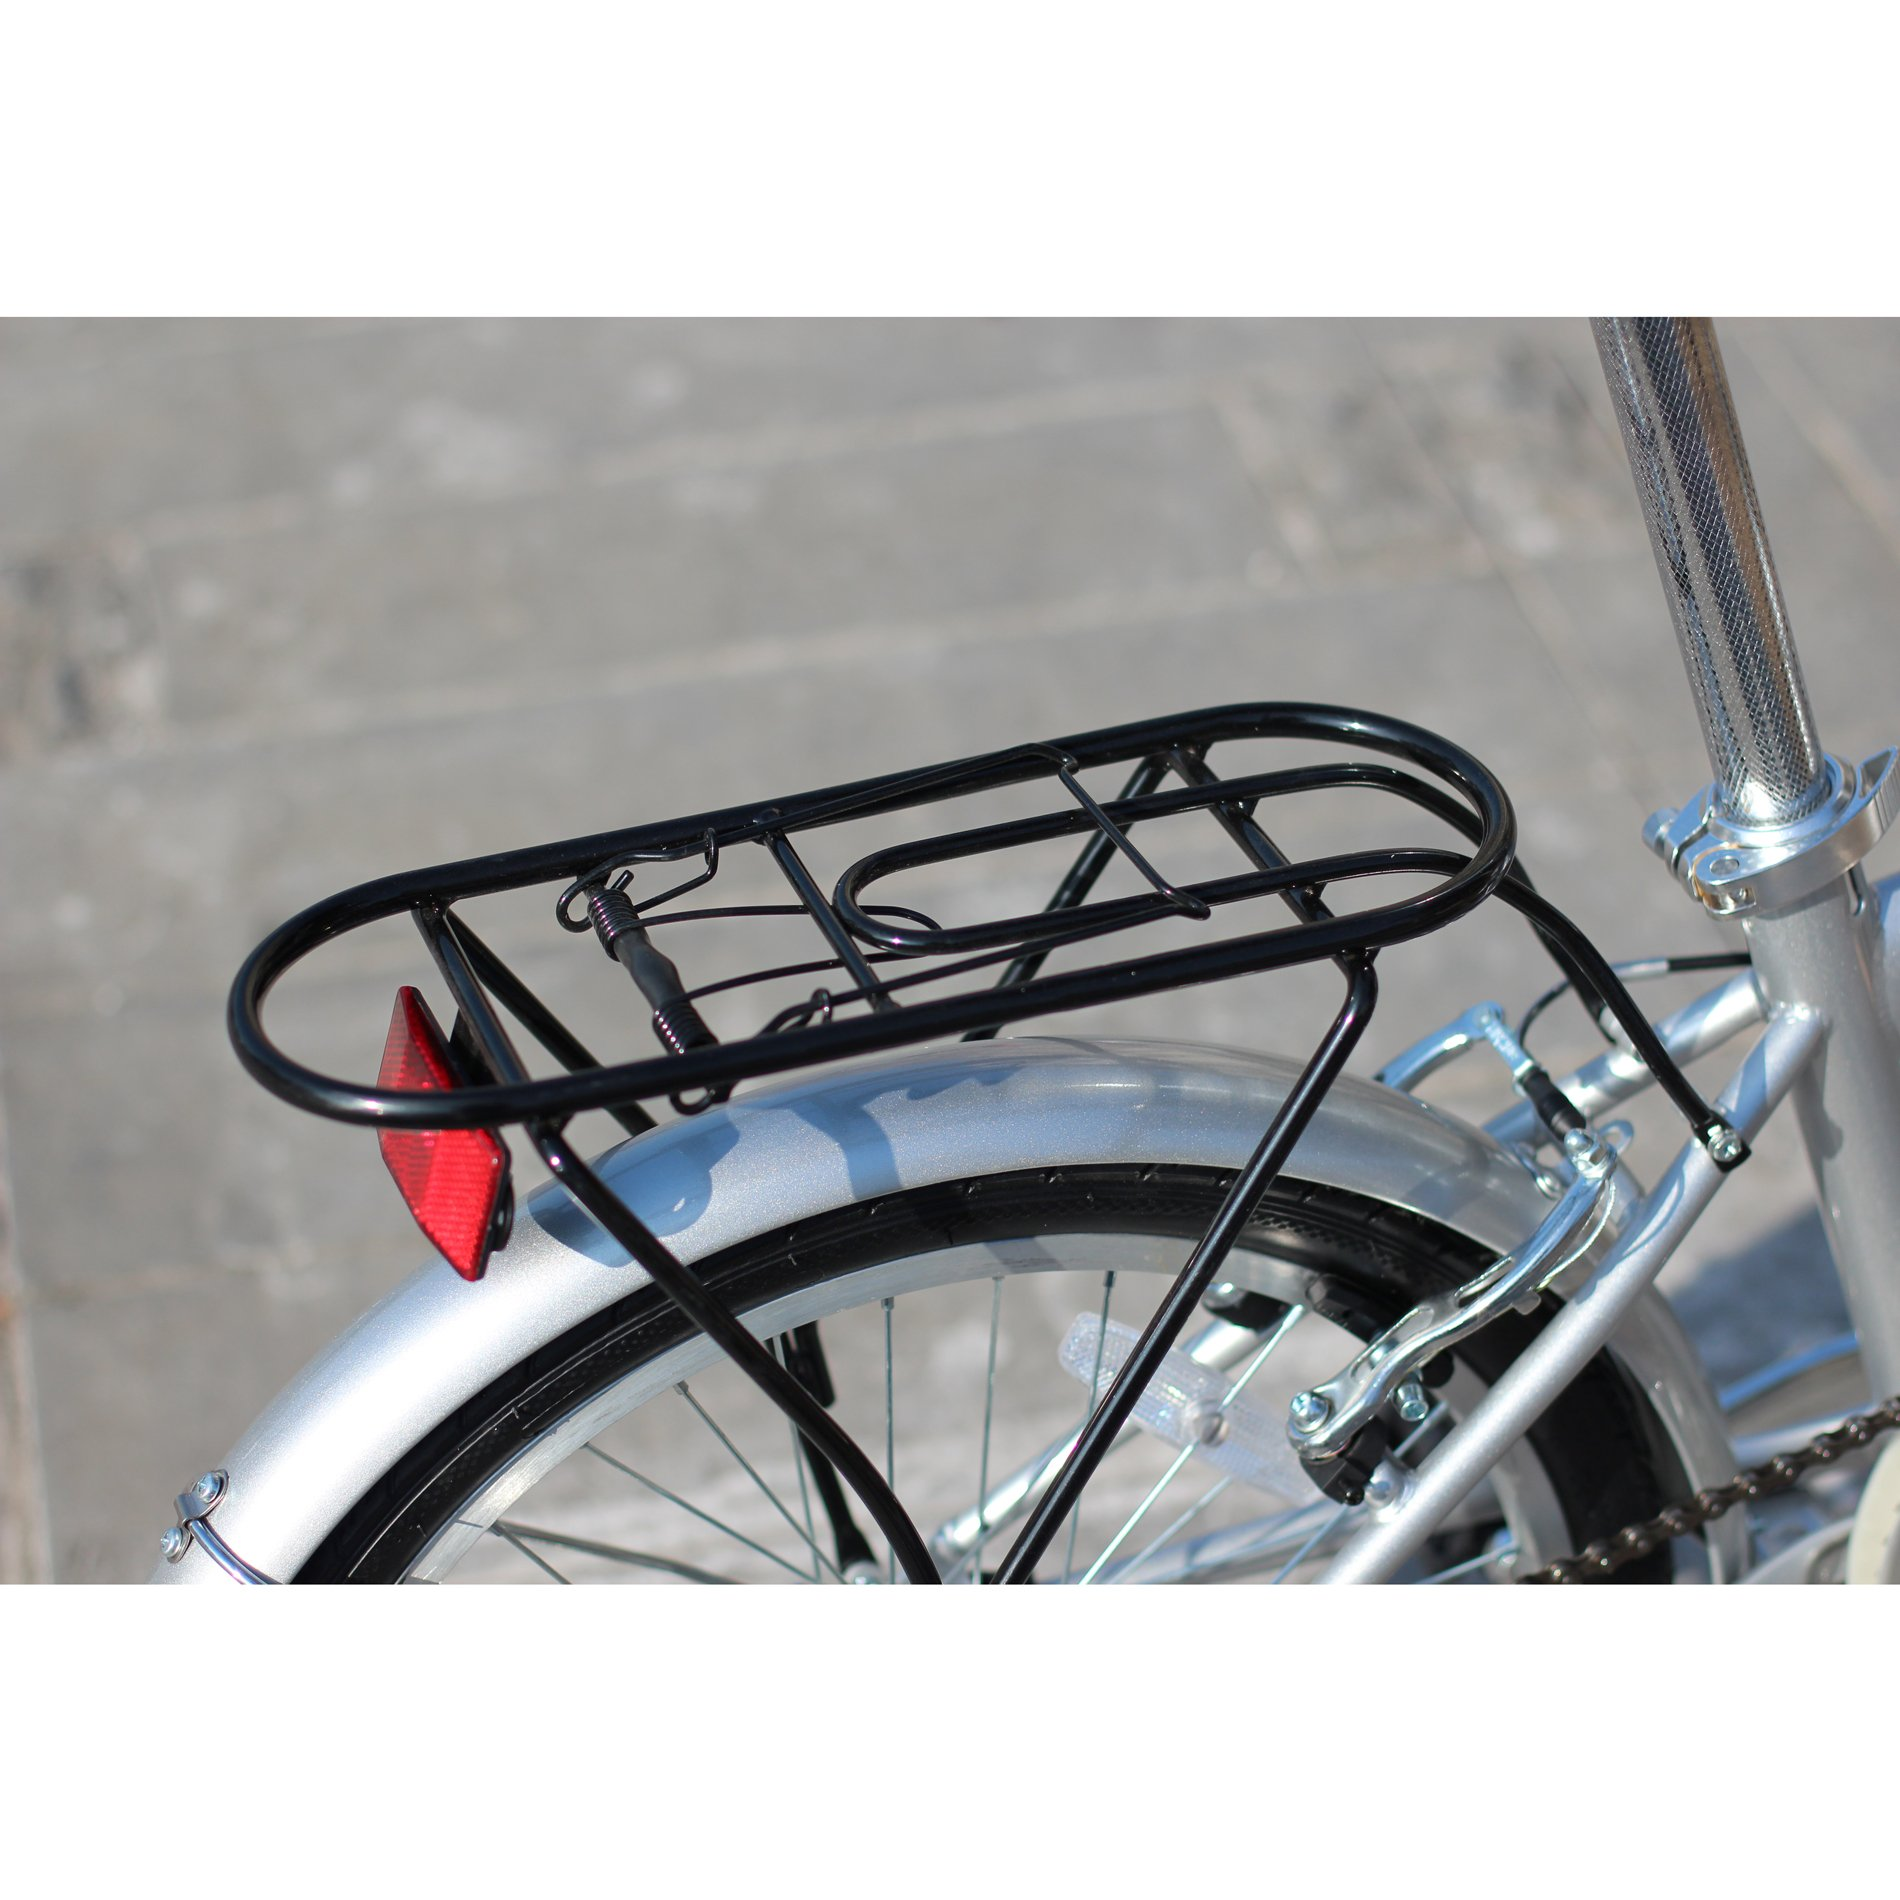 unYOUsual U transformer 20'' Folding City Bike Bicycle 6 Speed Shimano Gear Steel Frame Mudguard Rear Carrier Silver by IDS (Image #4)